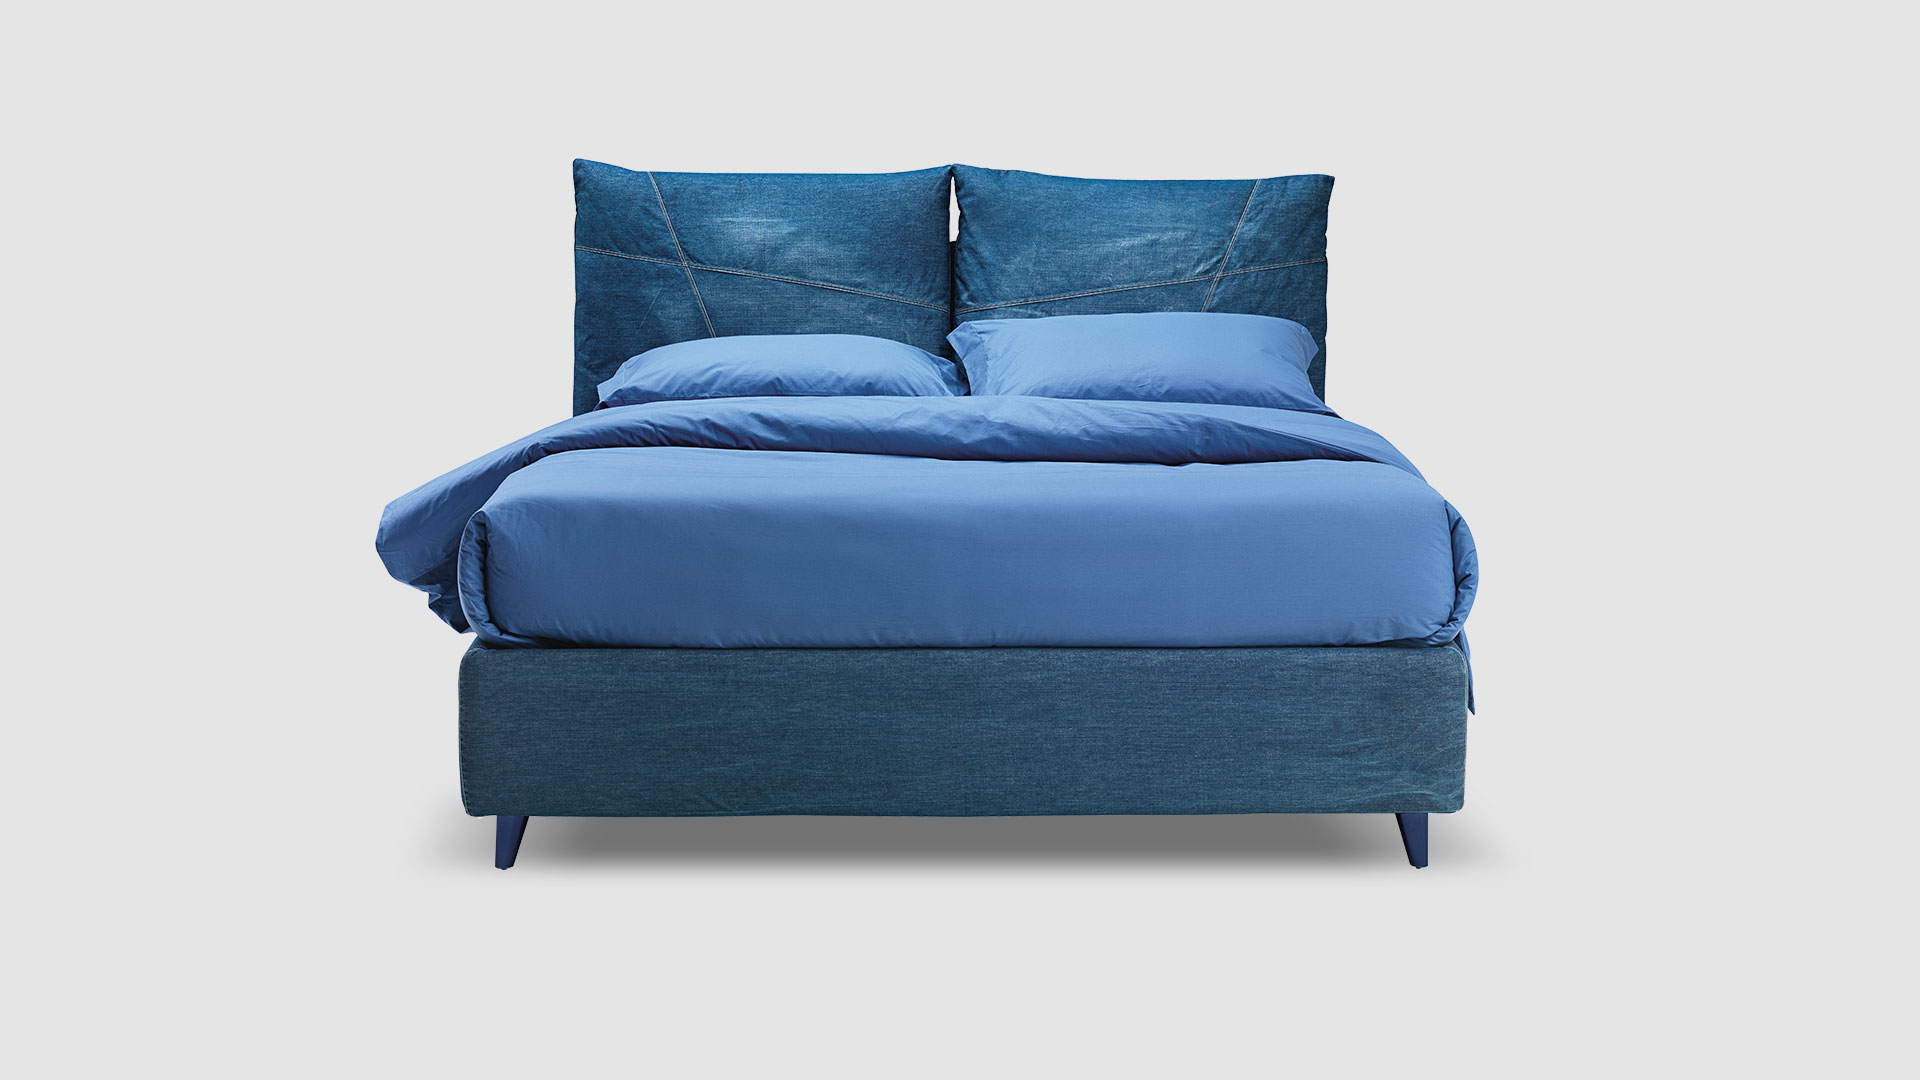 Italian Bed collection- ריהוט איטלקי